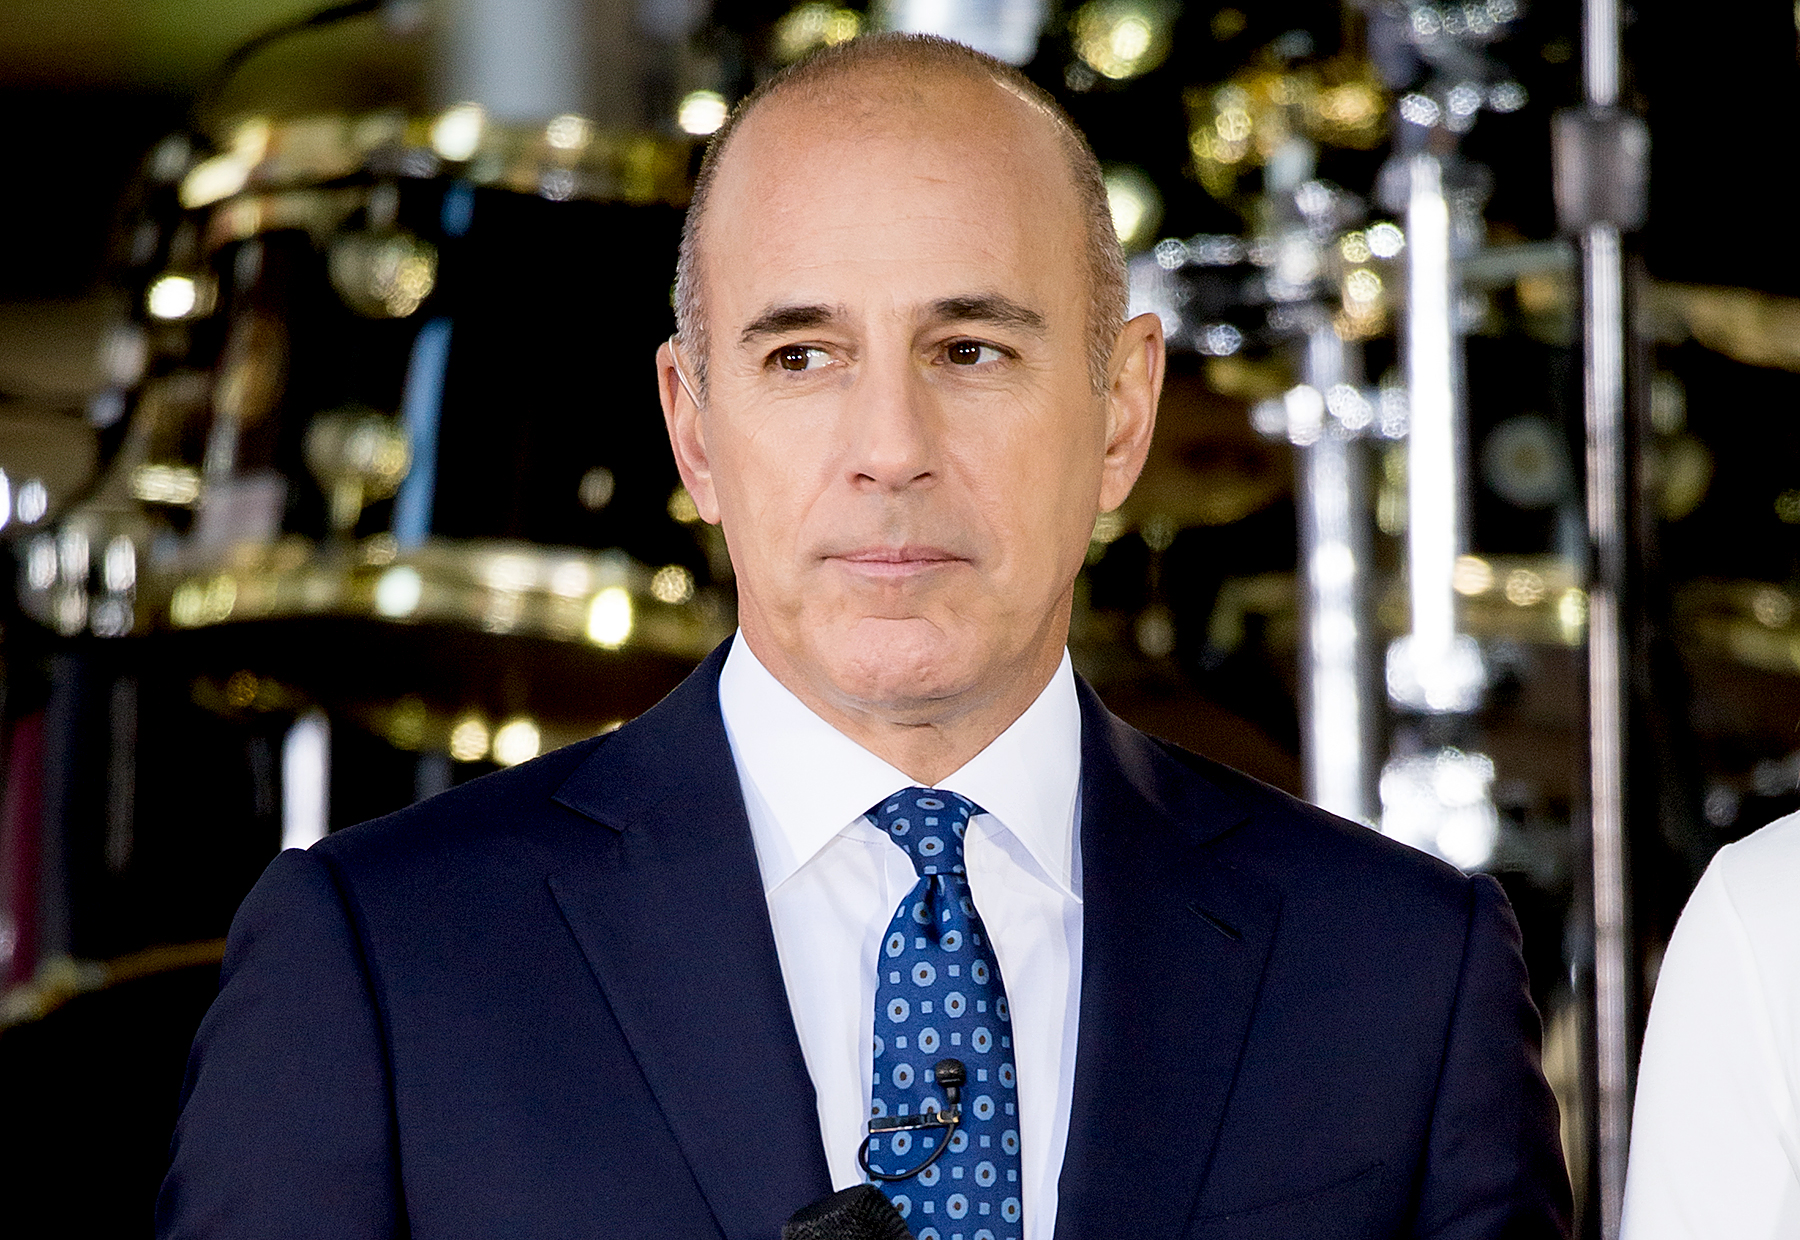 Ex-NBC employee shares details of alleged affair with Matt Lauer